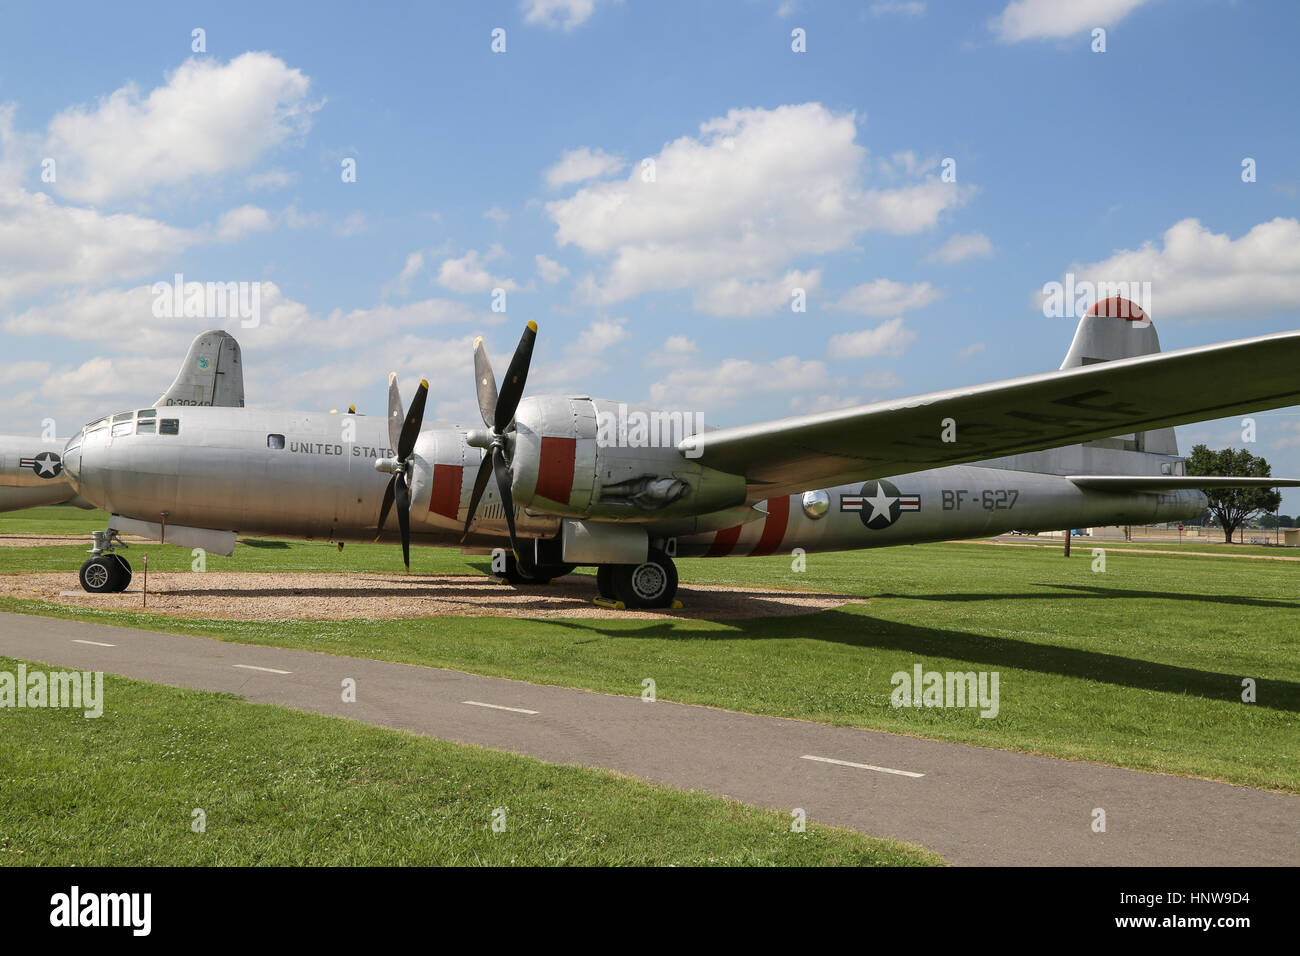 A Boeing B-29 Superfortress on display at The Barksdale Global Power Museum, on Barksdale AFB, Louisiana - Stock Image